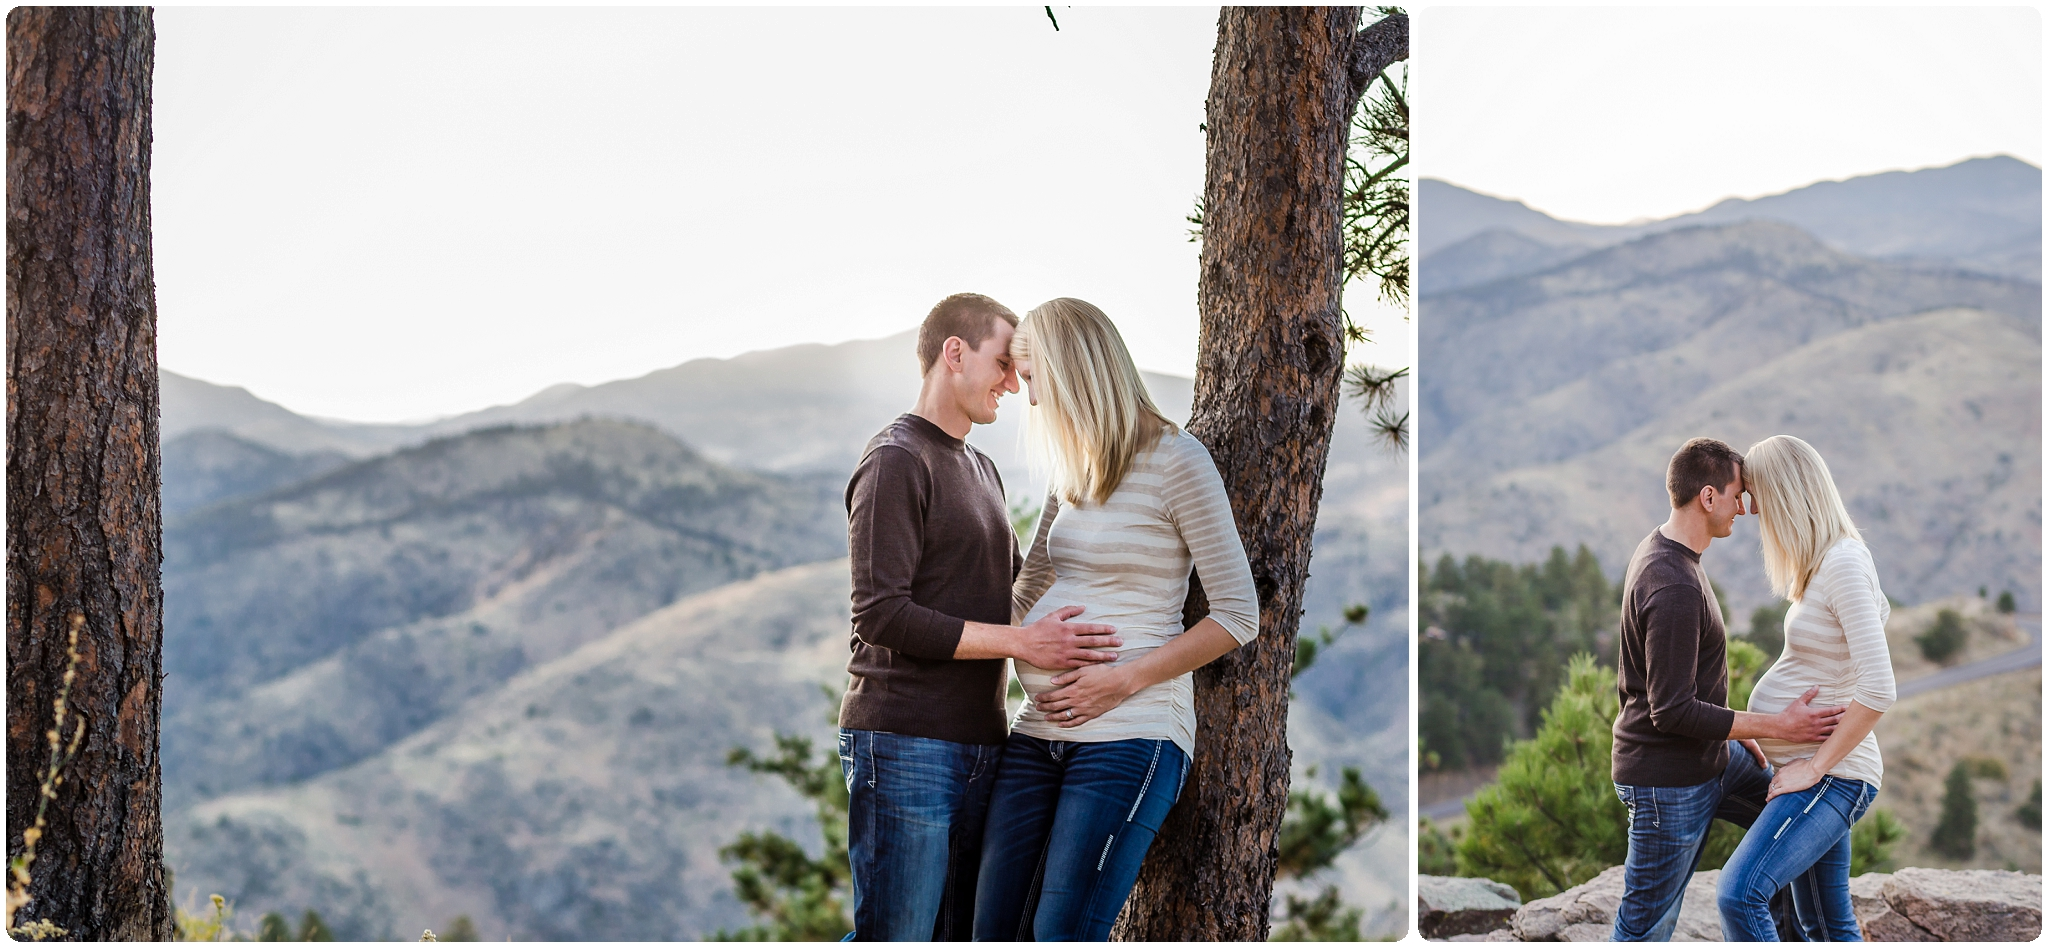 Pregnancy photography in the mountains of Colorado